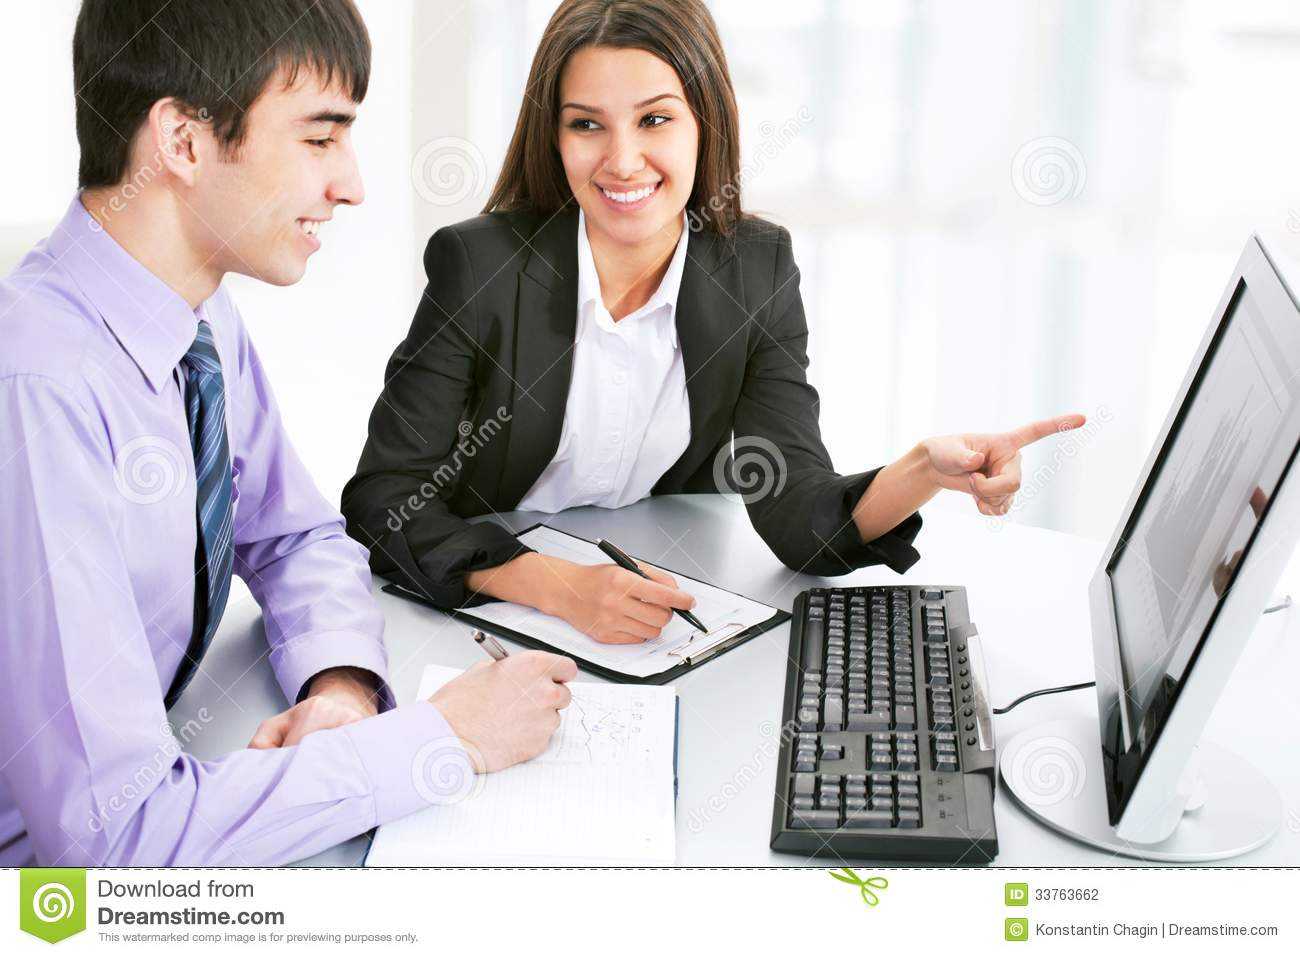 Business People Stock Photography - Image: 33763662